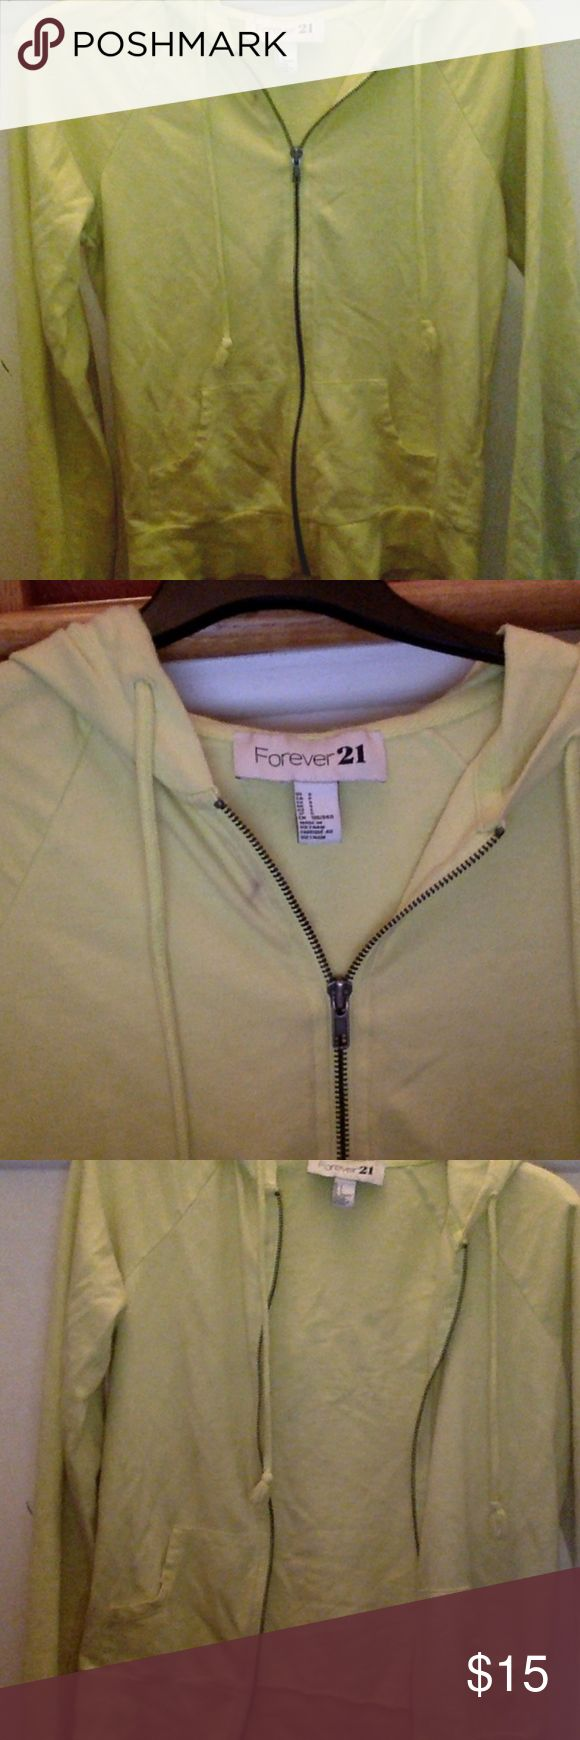 Womens Forever21 Cozy Yellow Zip Up Hoodie Previously Worn Forever21 Hoodie-Small In Good Condition  -will not trade -will not accept other offers Forever 21 Tops Sweatshirts & Hoodies